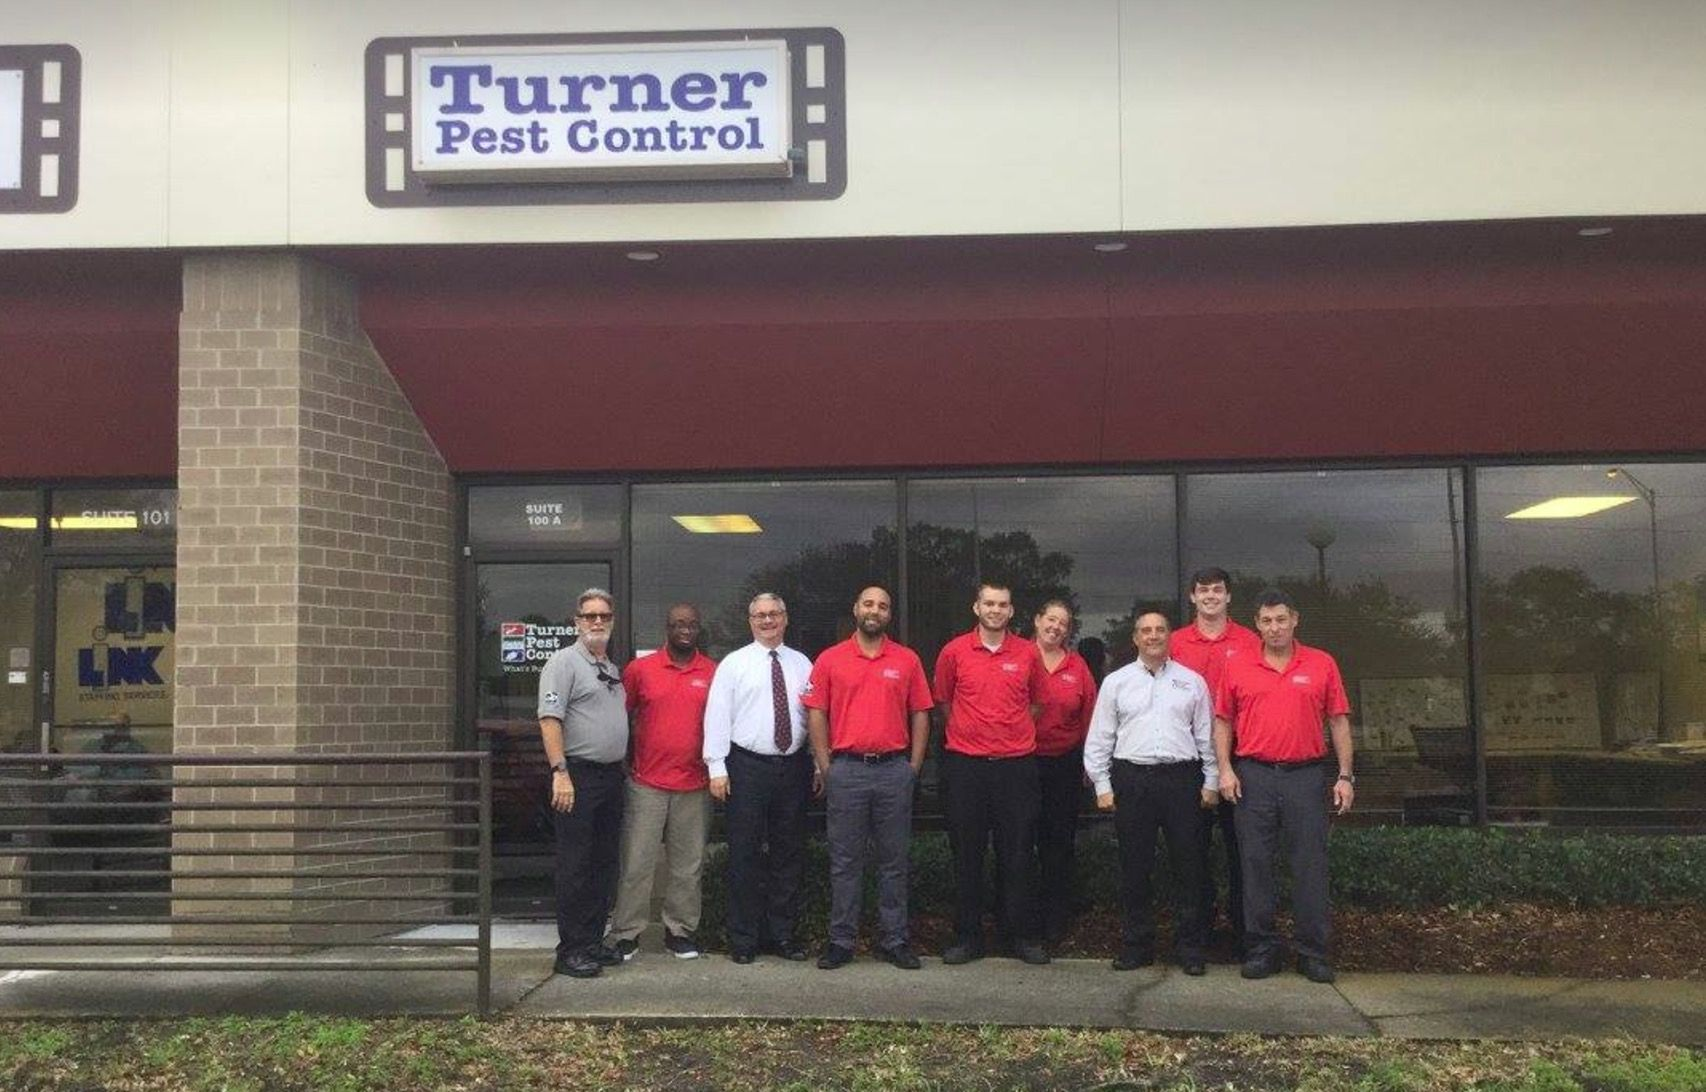 Pin by Turner Pest Control on Turner Pest Control u Tampa FL Office